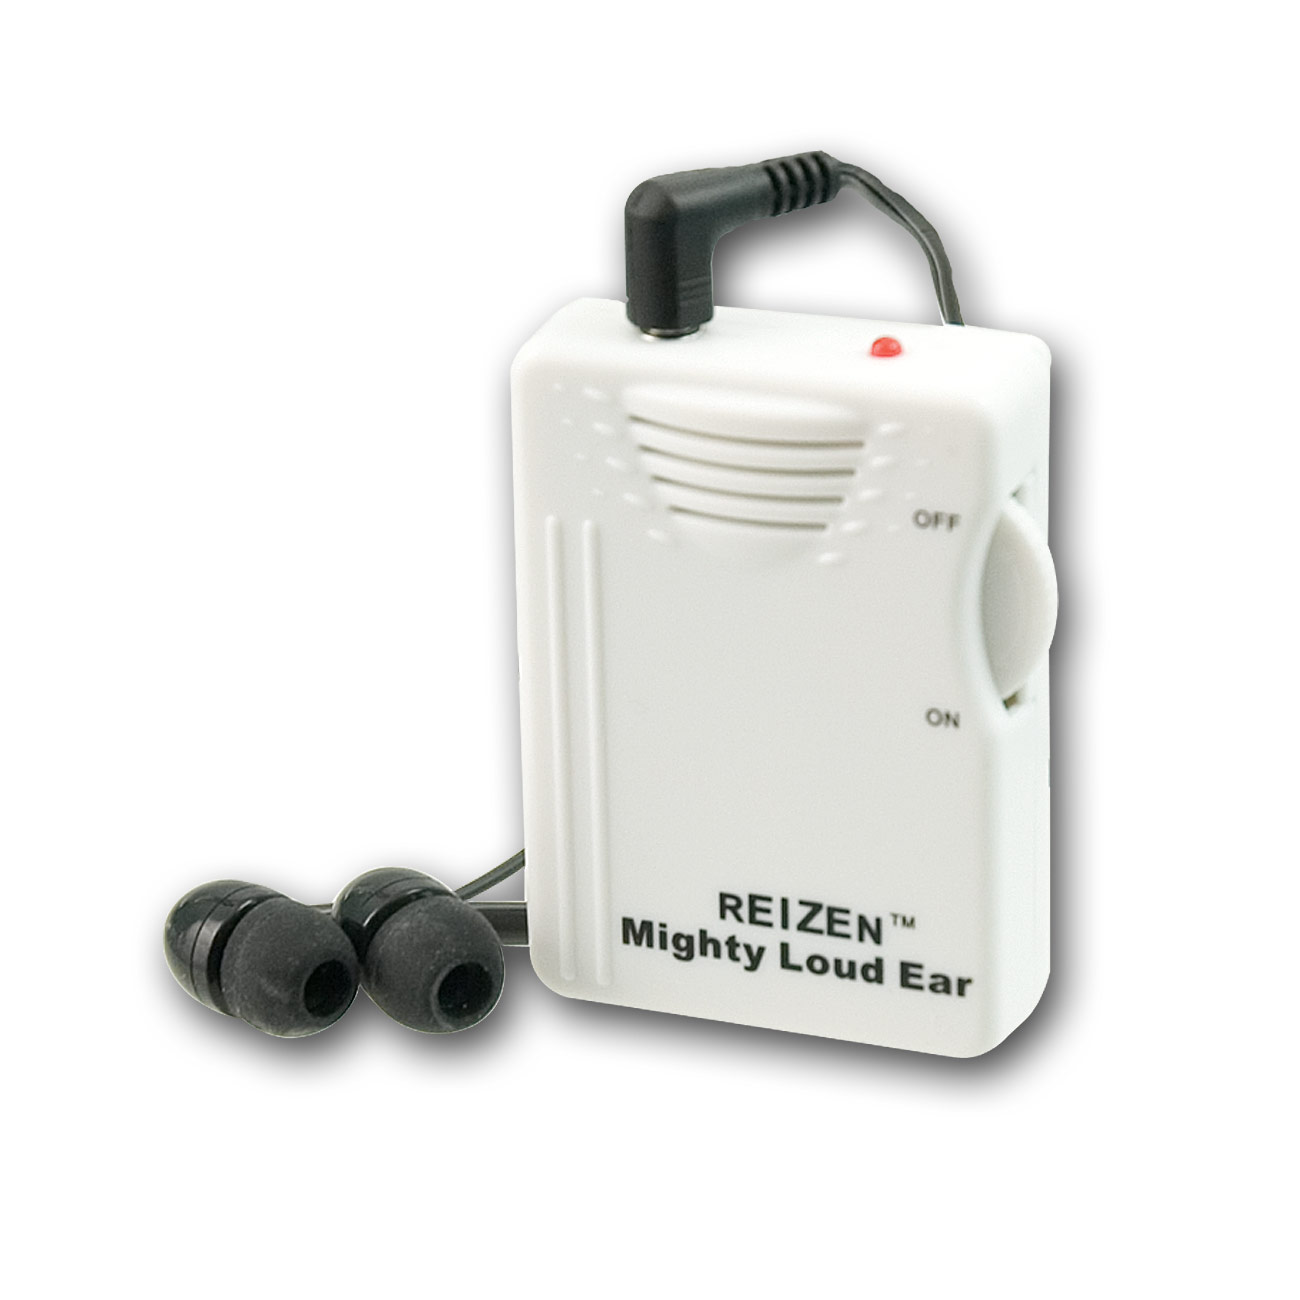 Reizen Mighty Loud Ear 120dB Personal Sound Hearing Amplifier